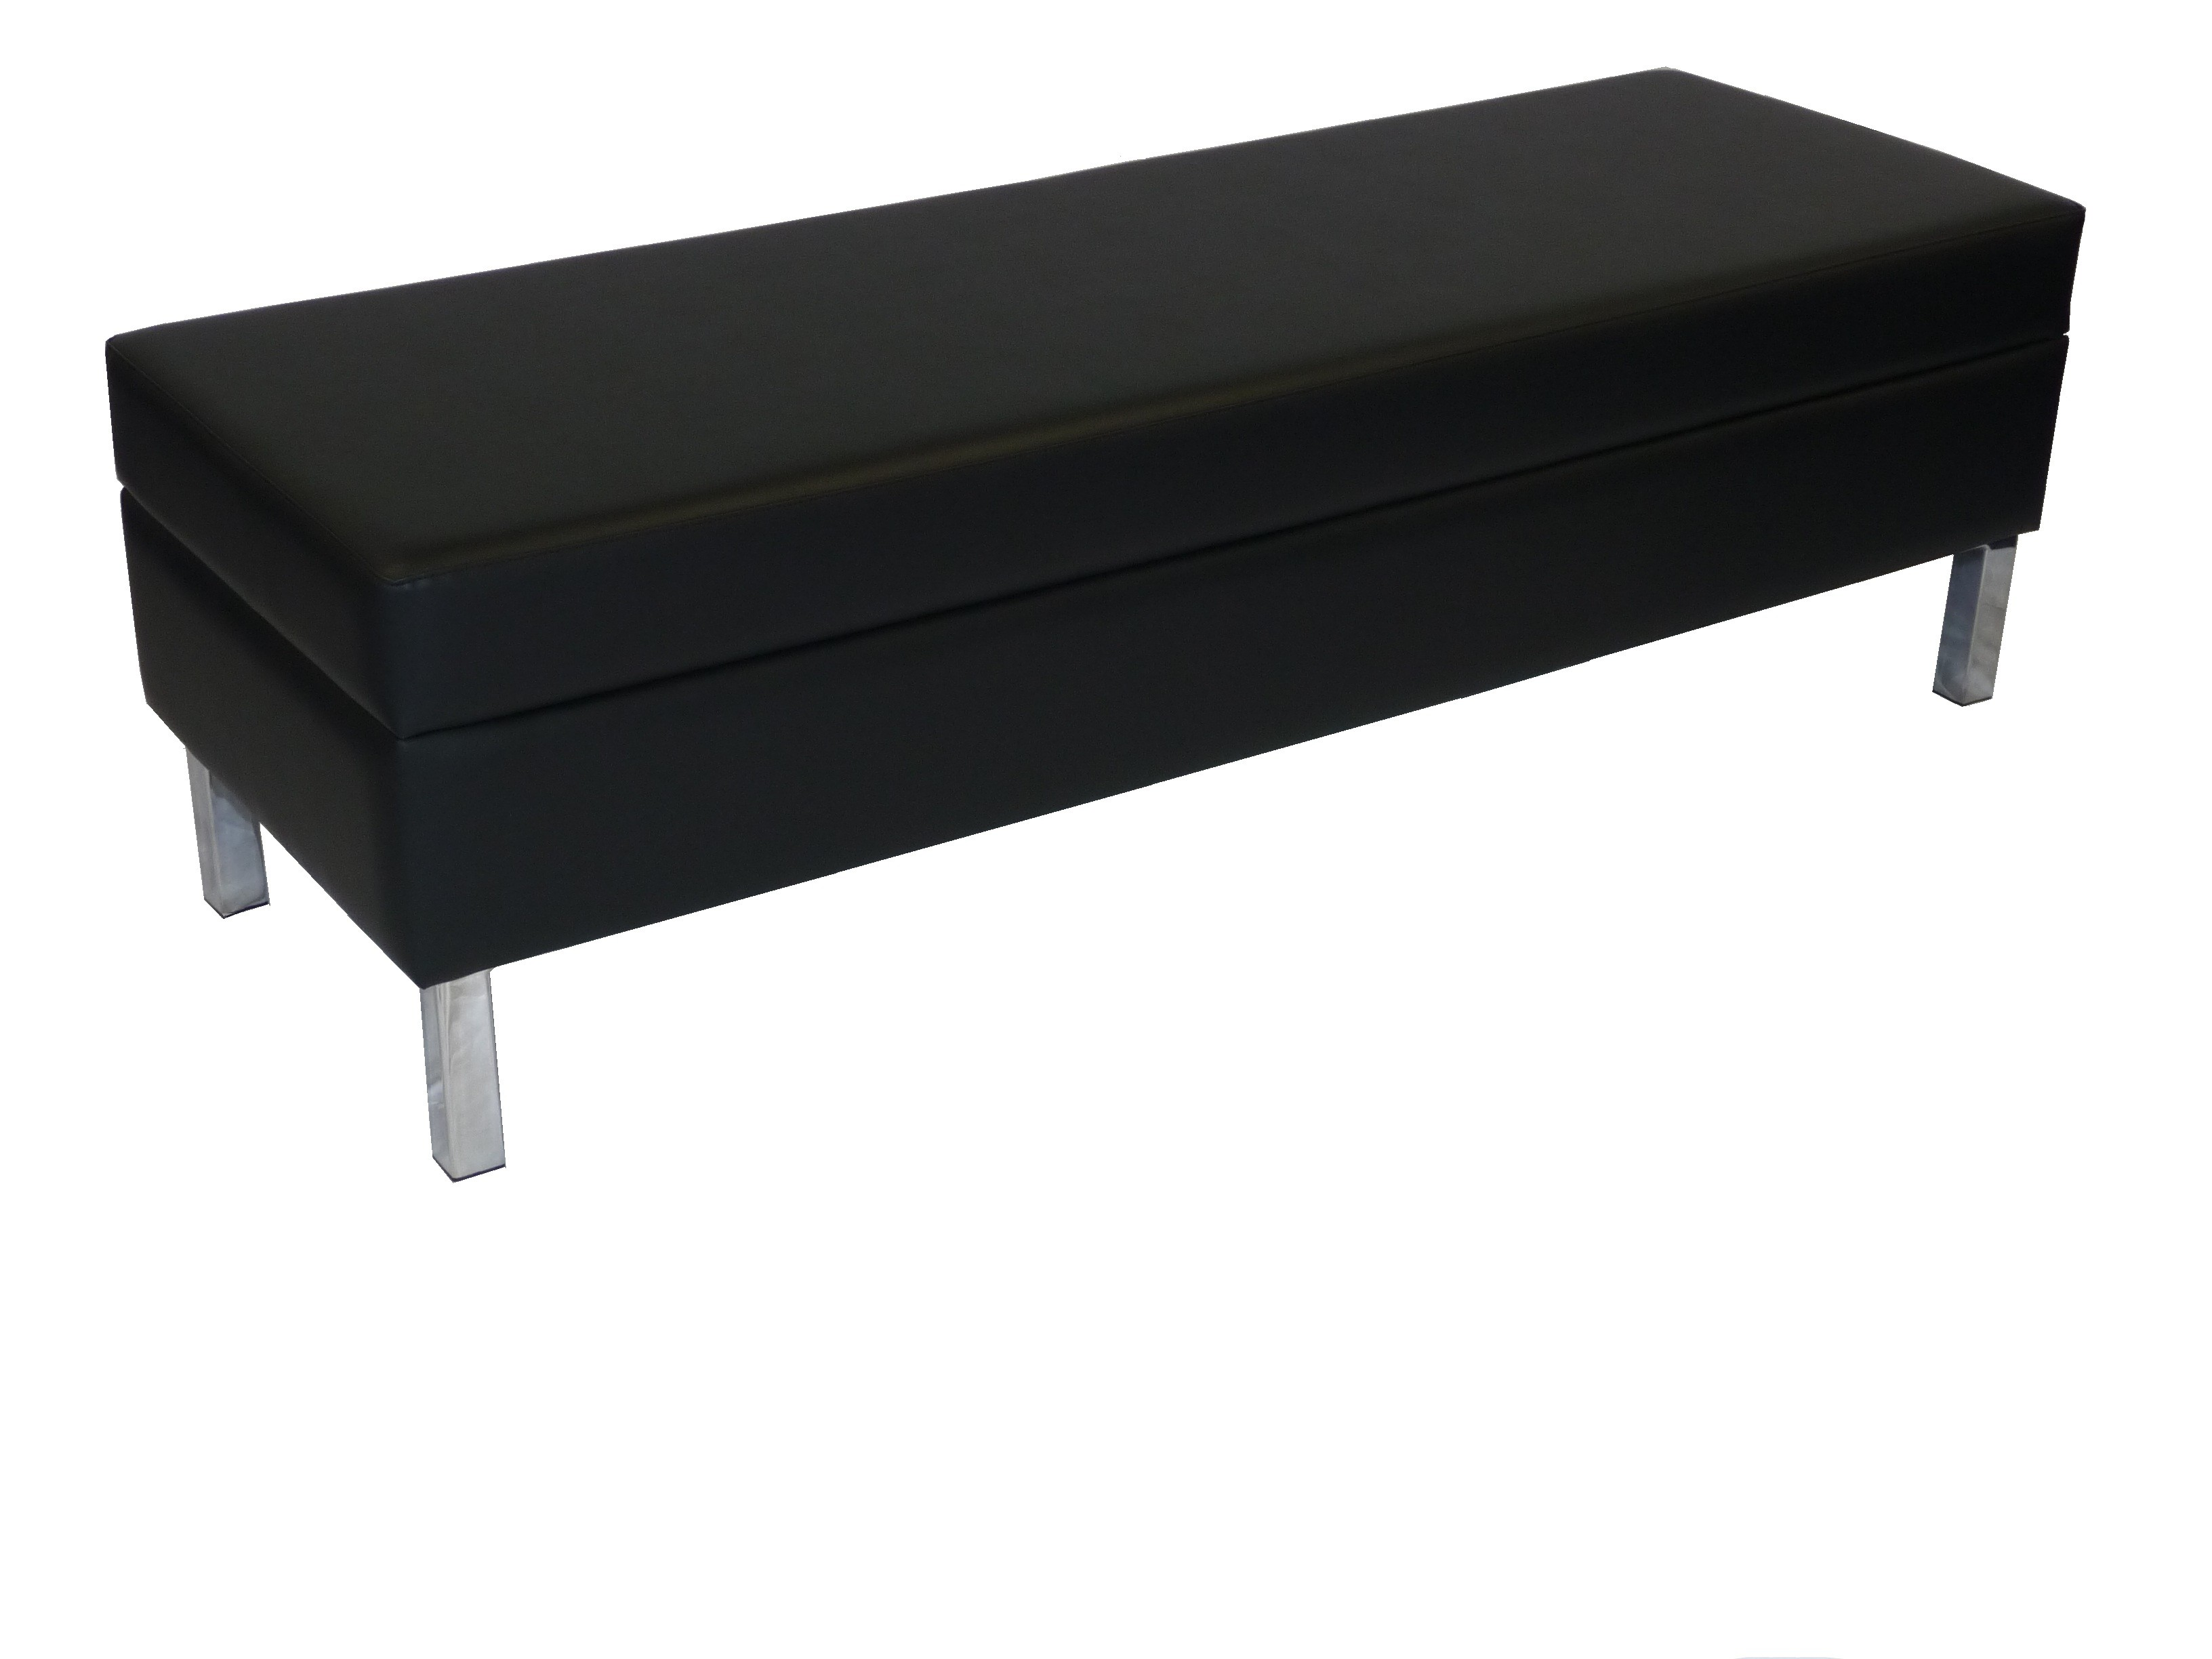 black bench bjursta bench brown black  cm ikea bjursta bench  - office furniture hire elite bench ottoman black office